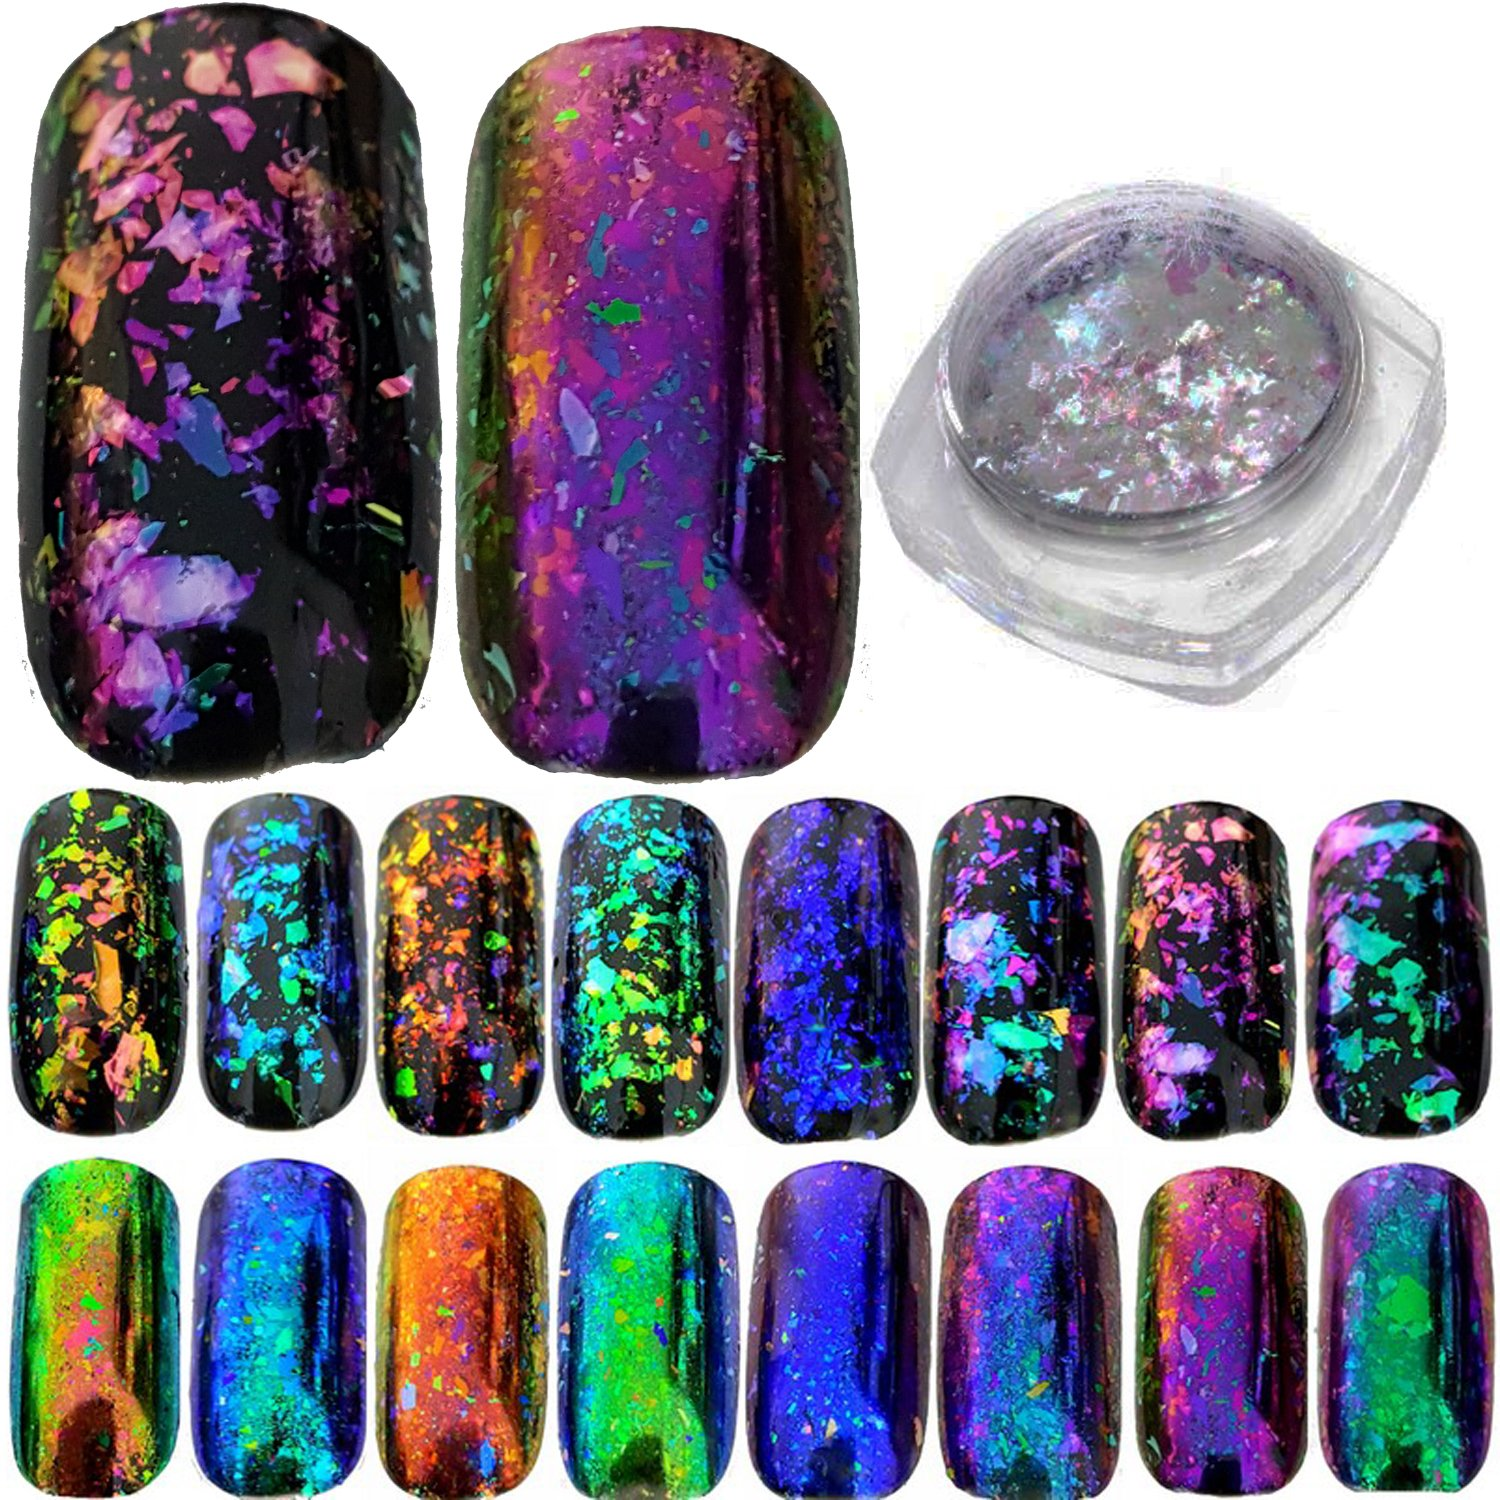 Chameleon Holographic Mirror Nail Flake Buy Online In China At Desertcart